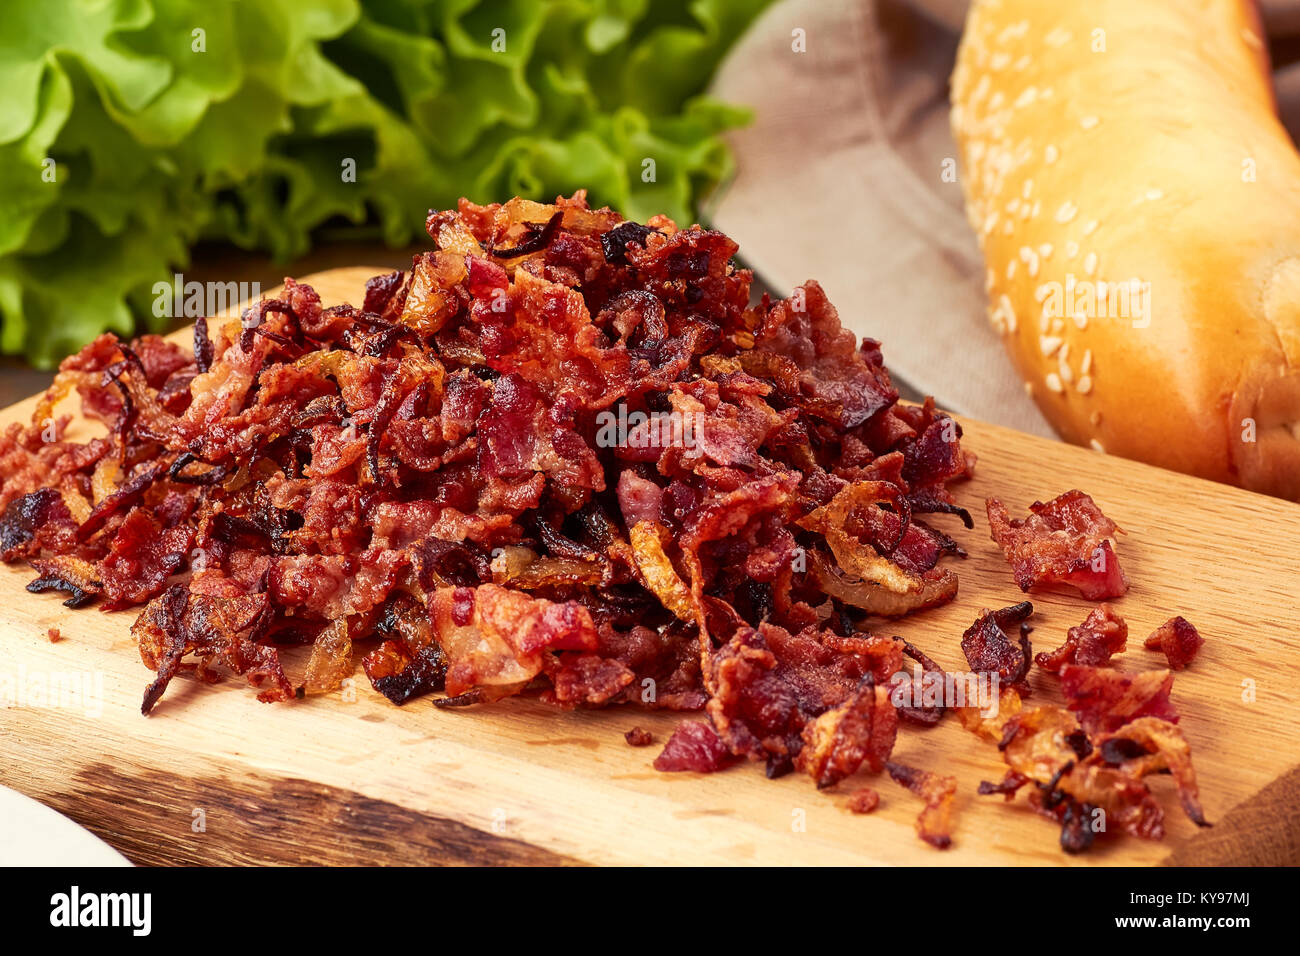 Heap of bacon and onion toppings - Stock Image